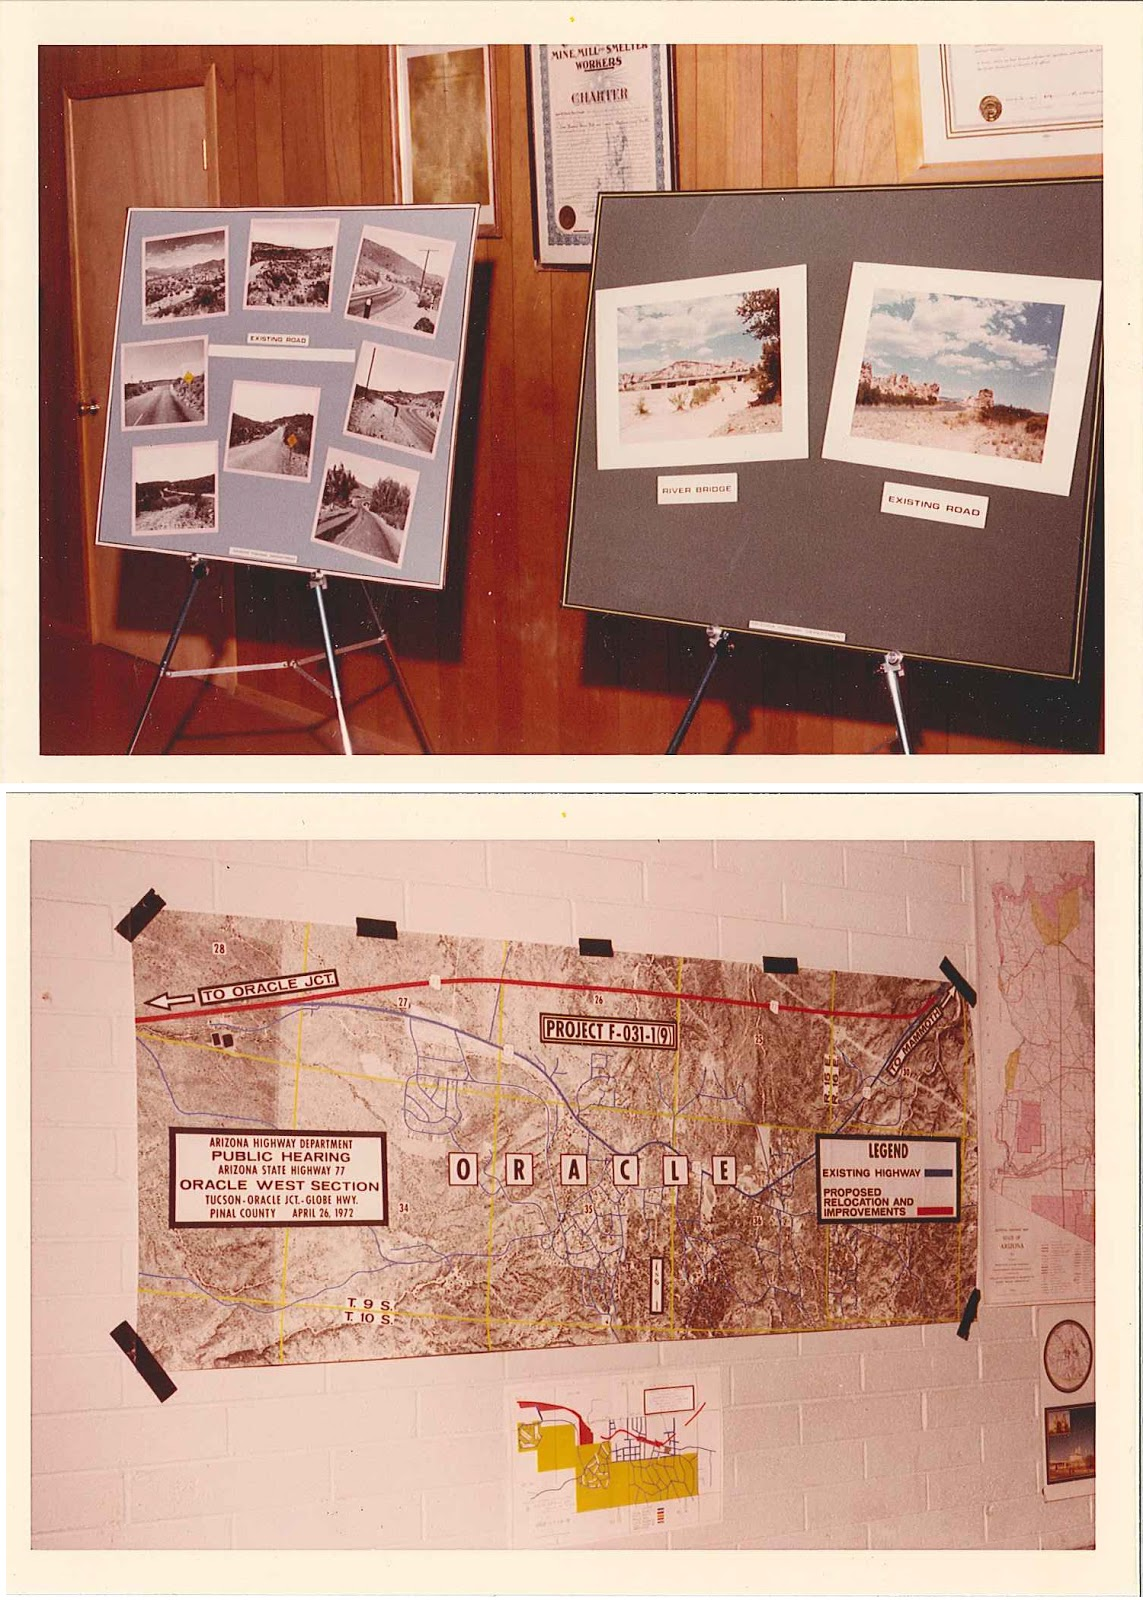 Display boards from 1972 public meeting